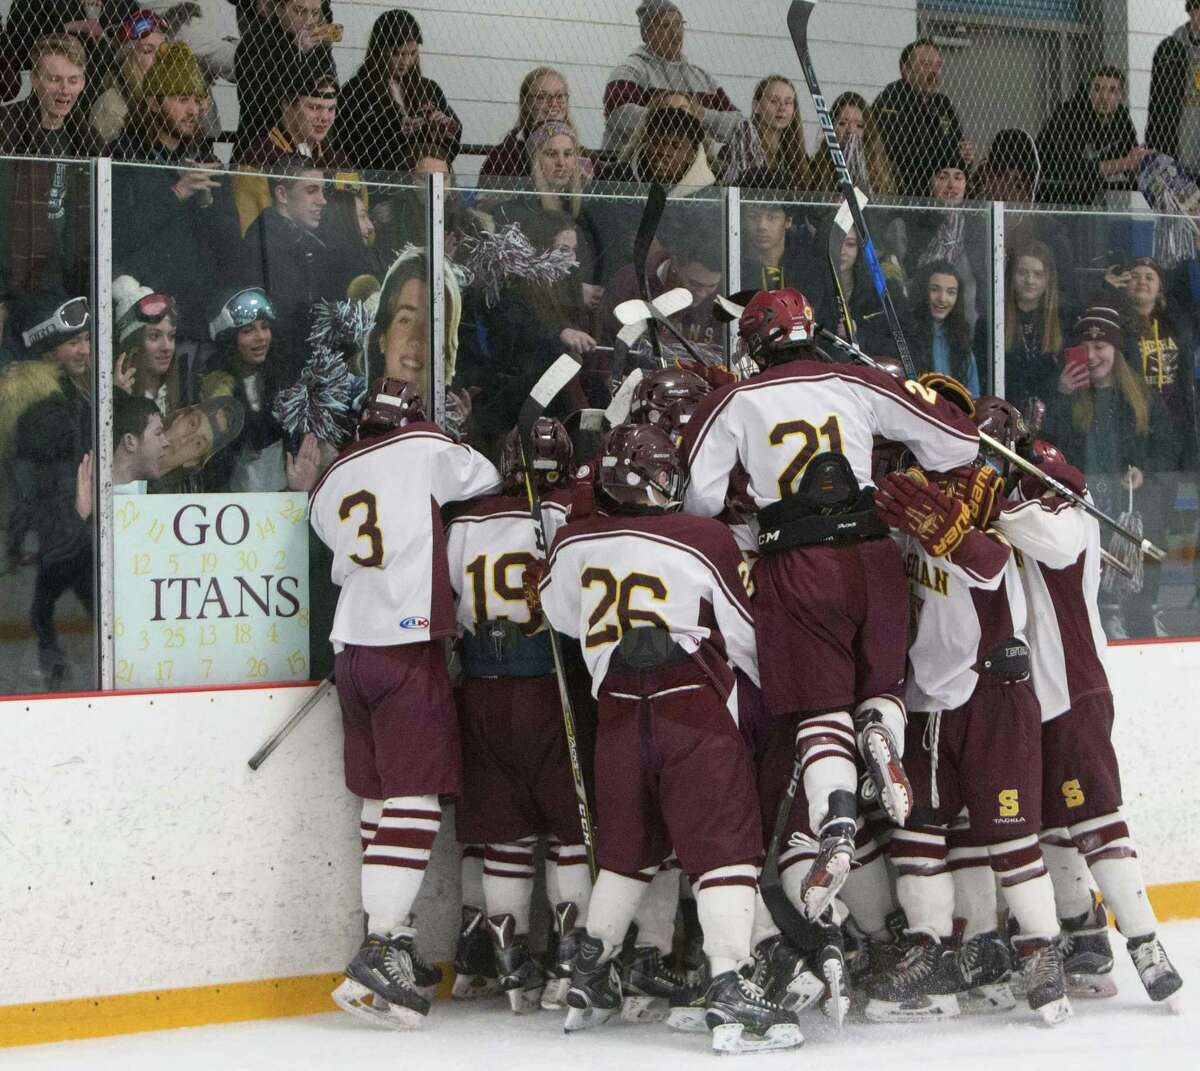 Members of the Sheehan hockey team celebrate their SCC Division 3 championship Friday, March 1, 2019 at Bennett Rink. Sheehan defeated JBWA 10-1.